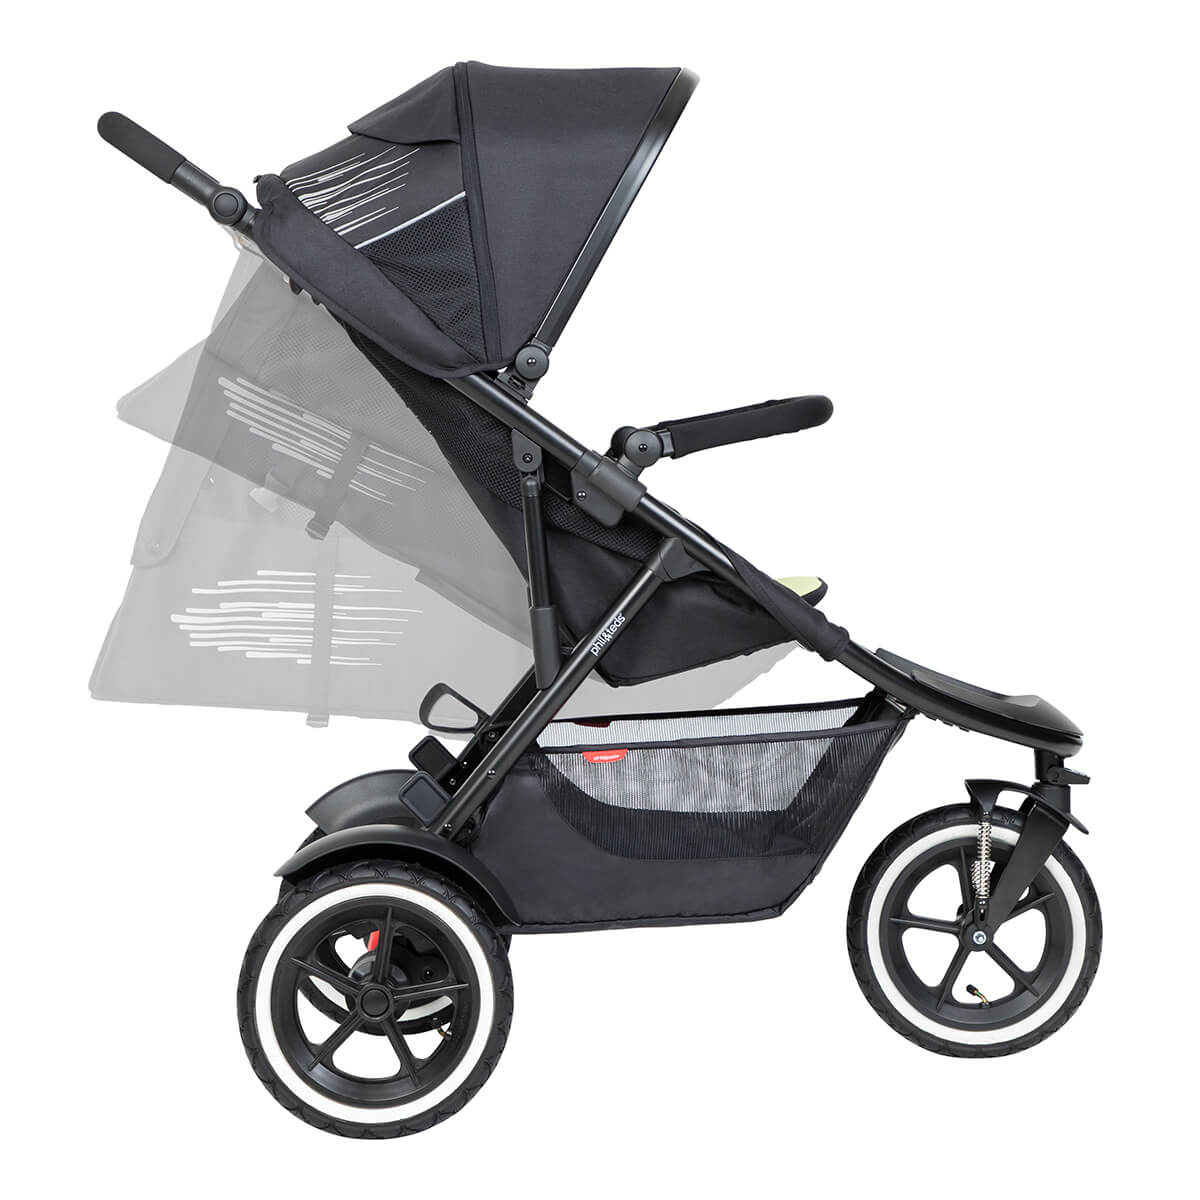 https://cdn.accentuate.io/4509527113816/19272668184664/philteds-sport-buggy-can-recline-in-multiple-angles-including-full-recline-for-newborn-baby-v1626484326375.jpg?1200x1200